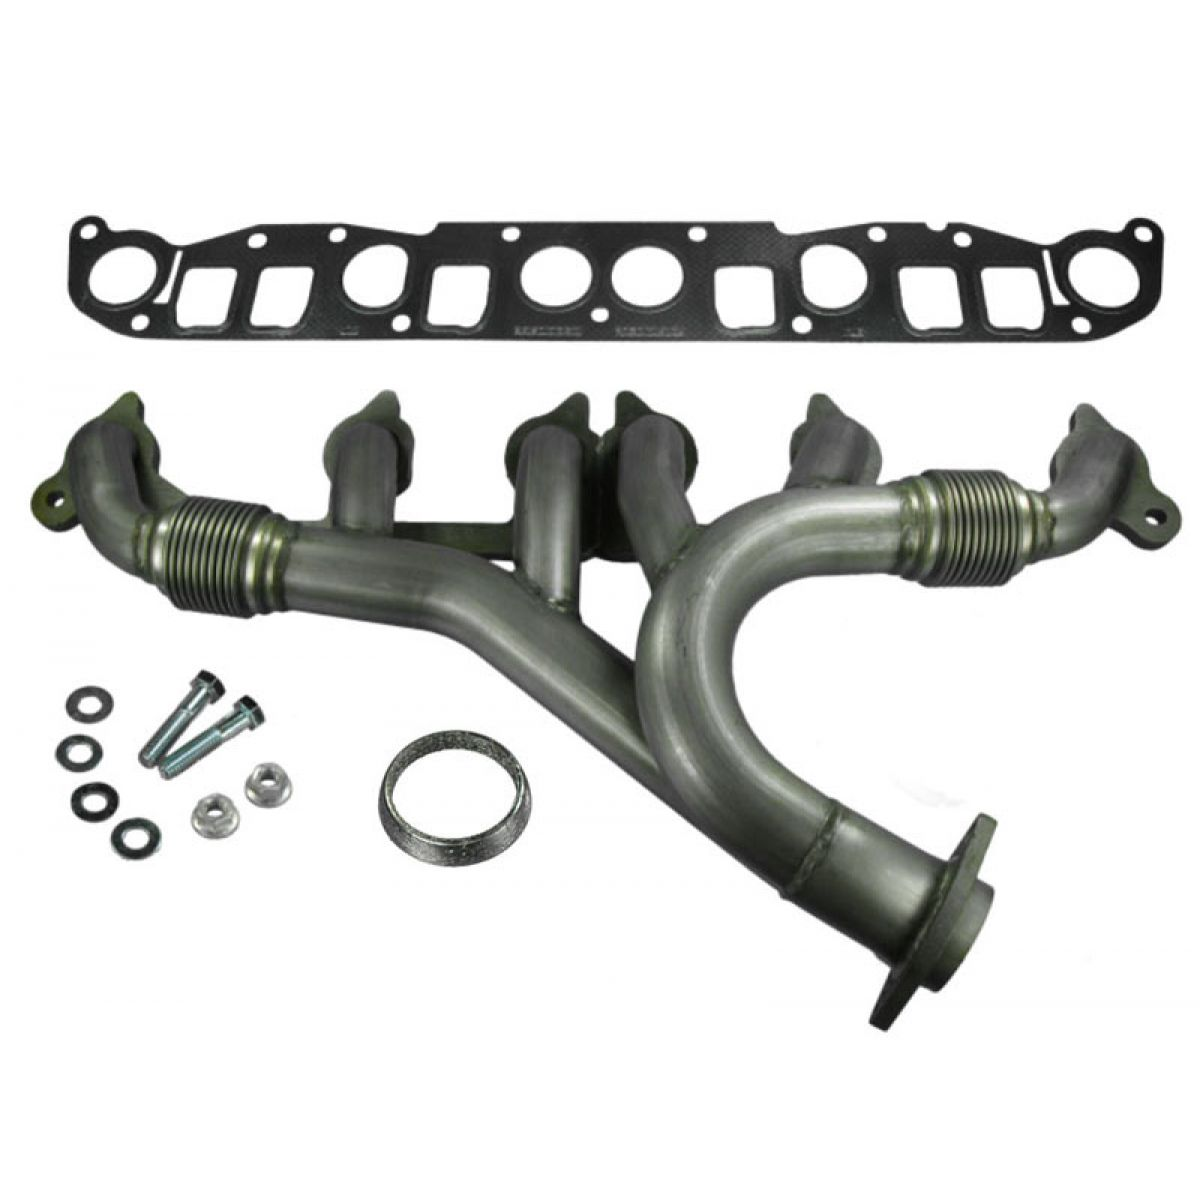 hight resolution of dorman stainless exhaust manifold w gasket for jeep wrangler grand cherokee